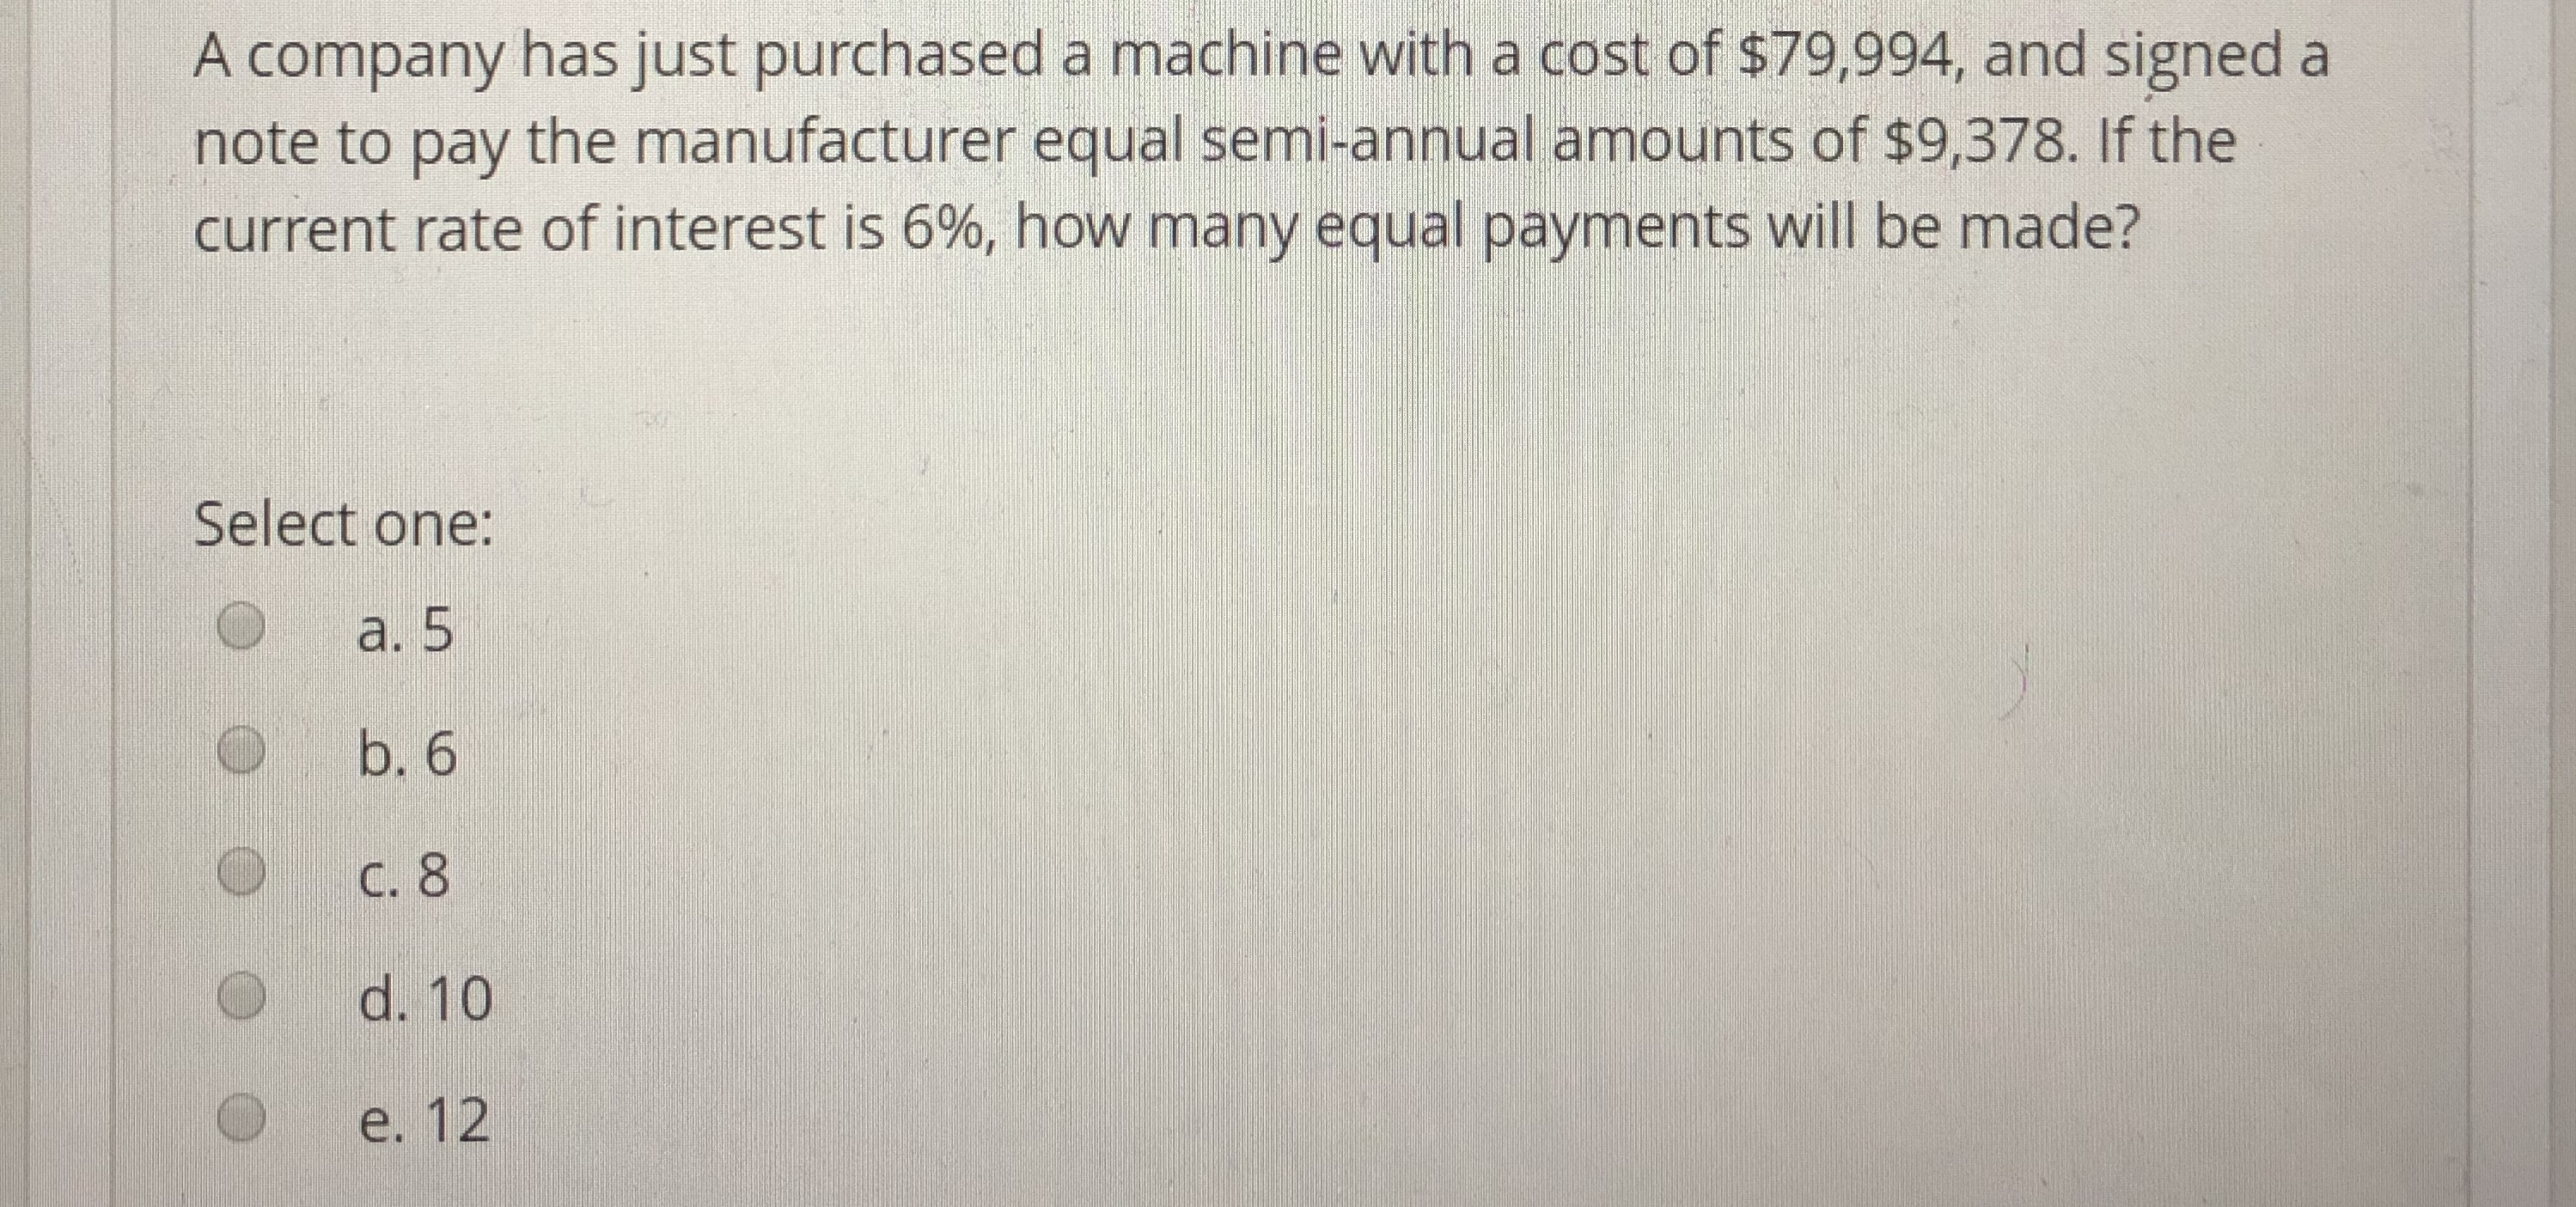 A company has just purchased a machine with a cost of s79,994, and signed a note to pay the manufacturer equal semi-annual amounts of $9,378. If the current rate of interest is 6%, how many equal payments will be made? Select one: a. 5 O b. 6 O C. 8 d. 10 e. 12